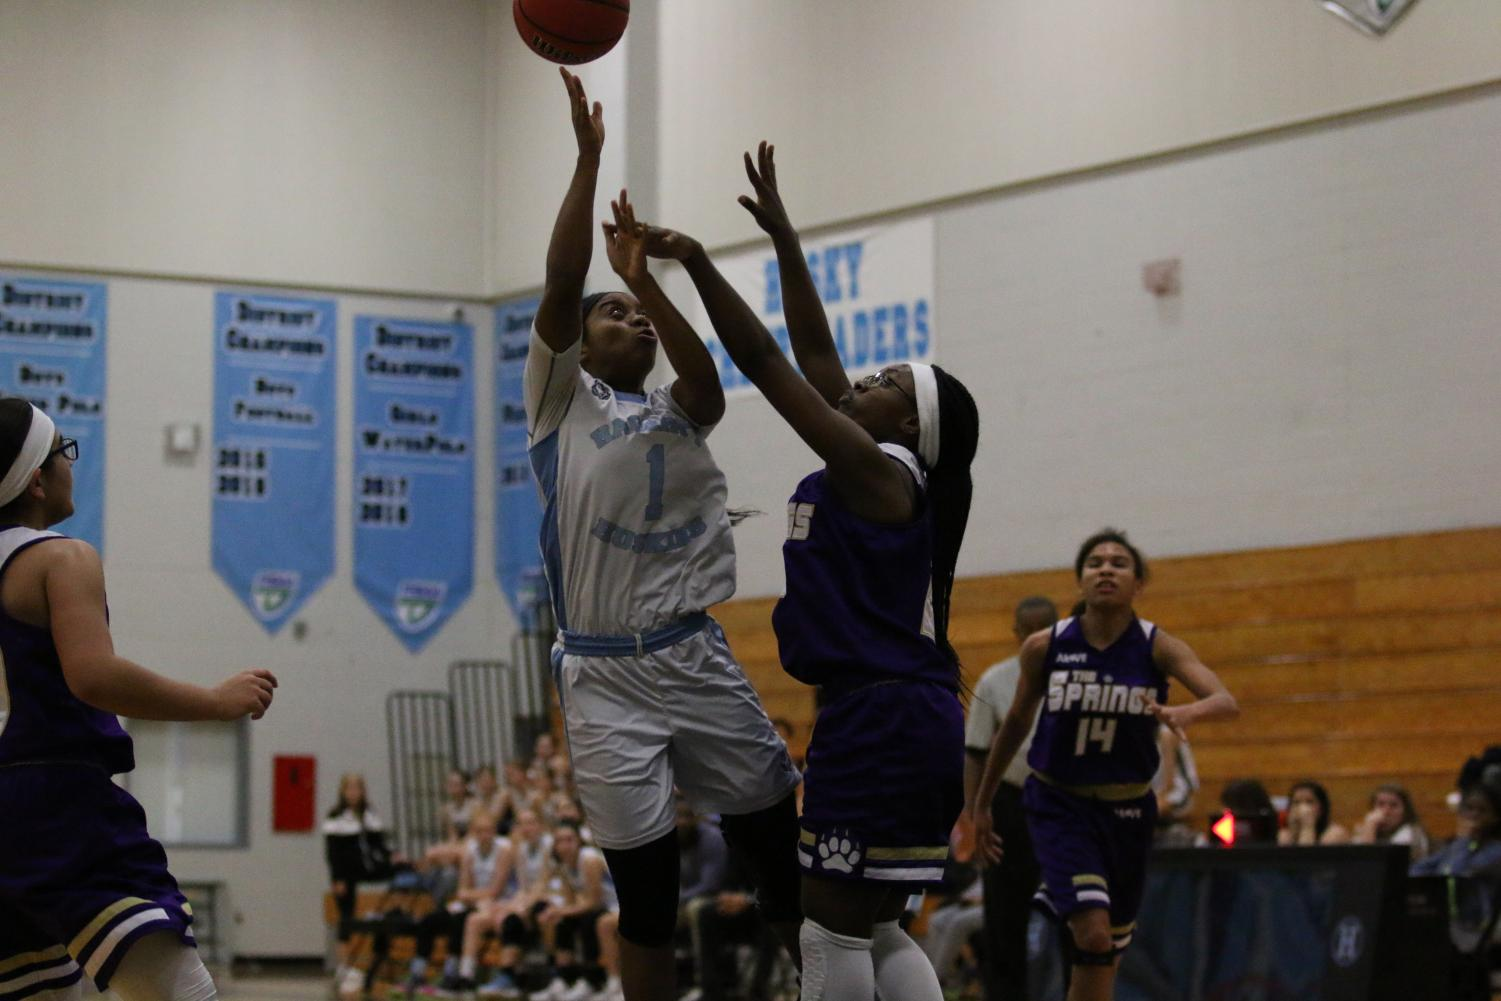 Forward Aryann Johnson goes up for a layup against Winter Springs. The team won and began the season 5-0.